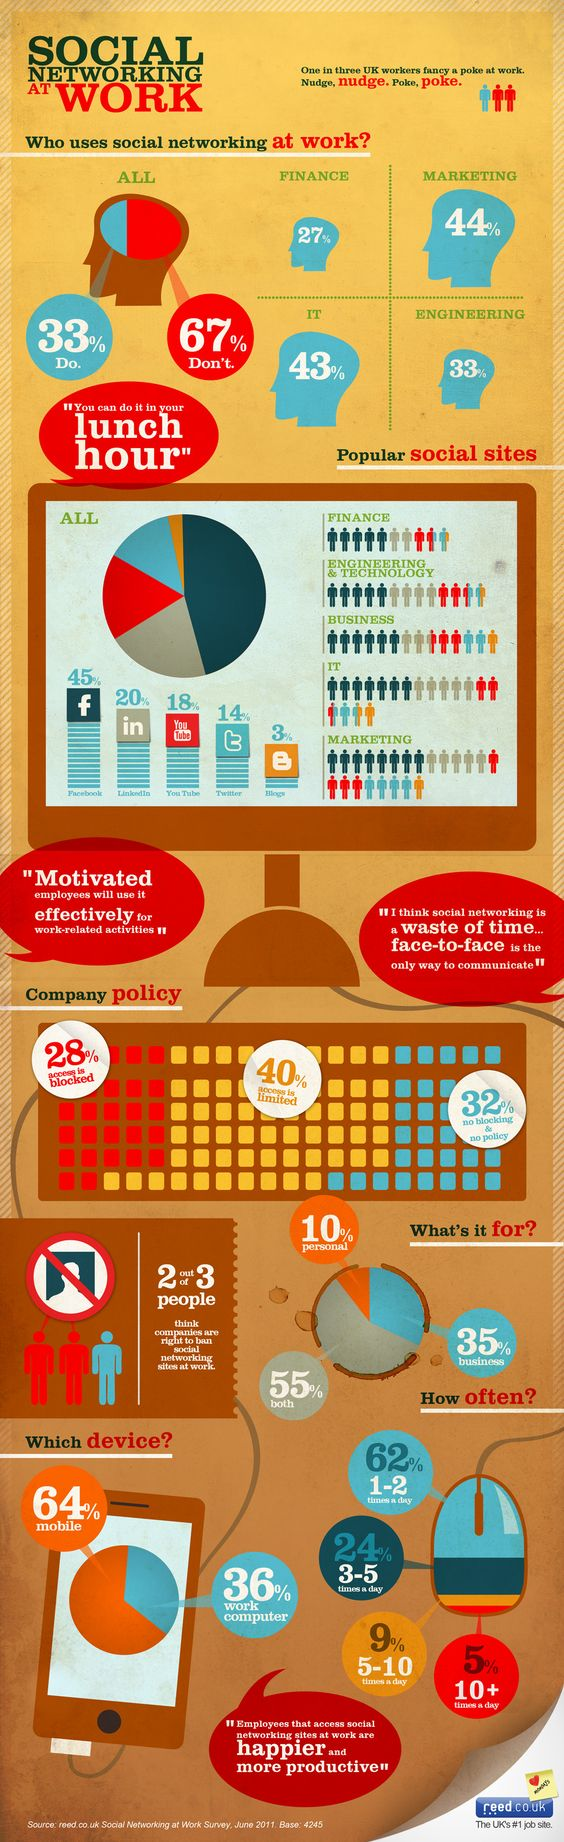 Employee are Happier when accesing SOCIAL MEDIA at WORK